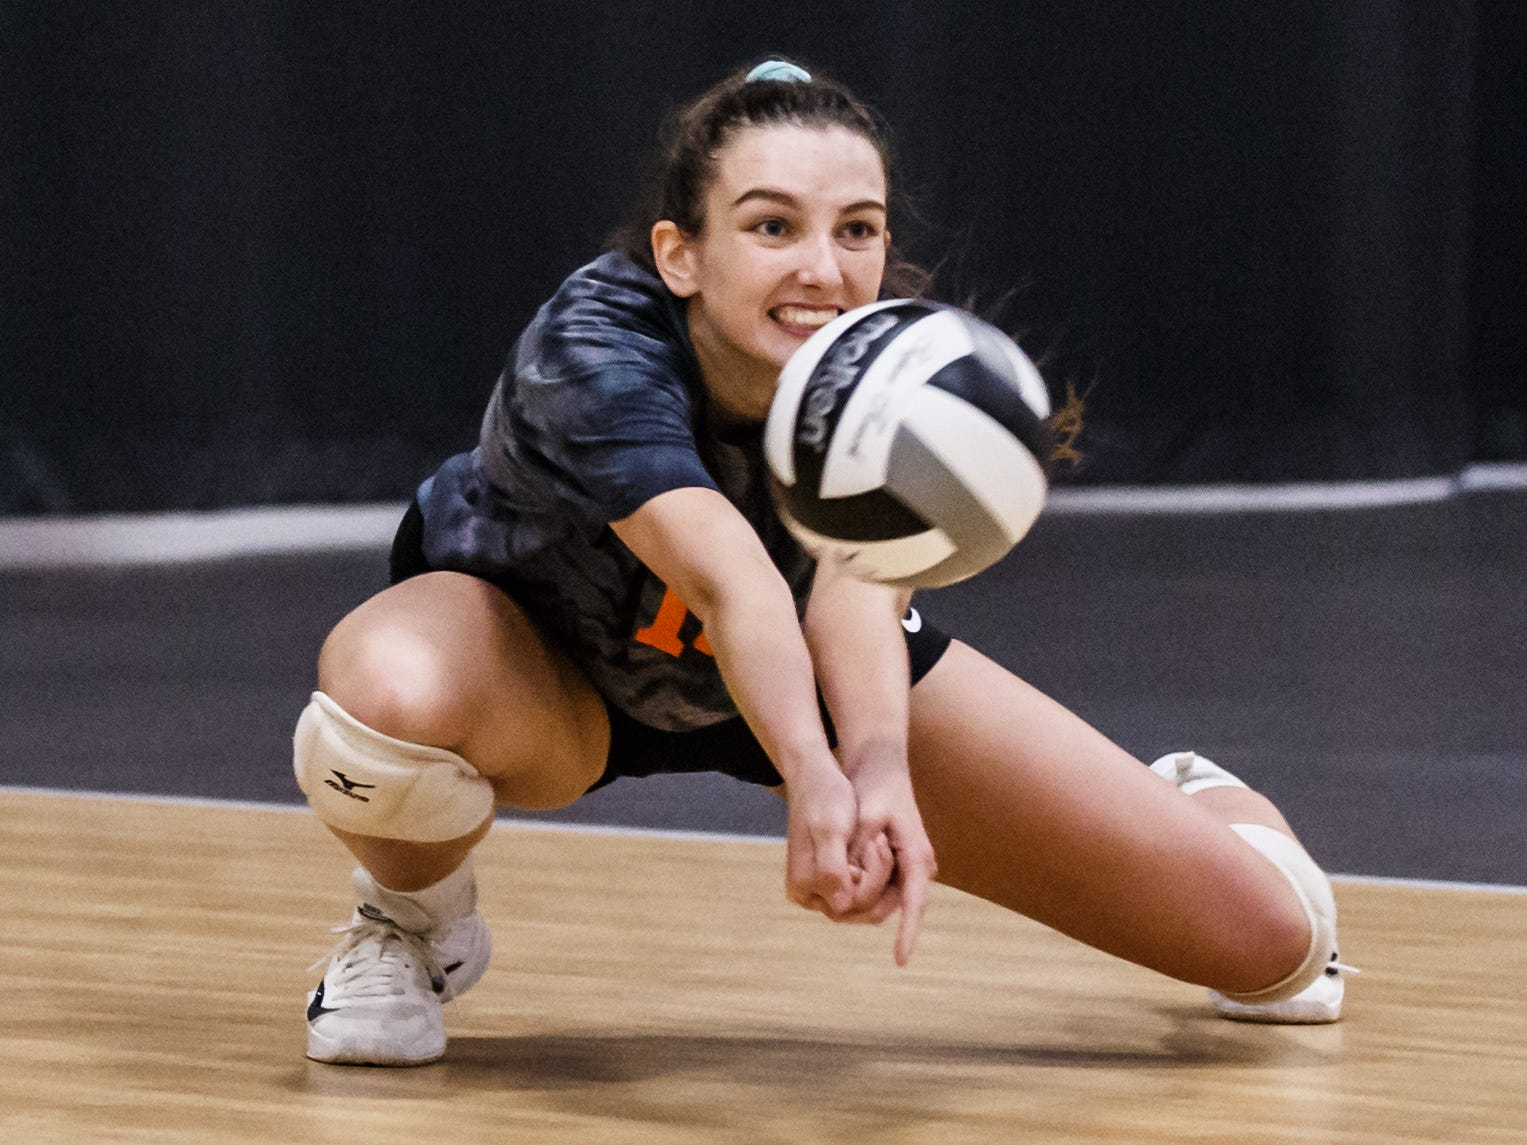 Cedarburg senior Ella Martone (13) digs a serve during a match at the 2018 Eastbay Charger Challenge hosted by Sussex Hamilton at the Milwaukee Sting Center in Menomonee Falls on Saturday, Sept. 15.